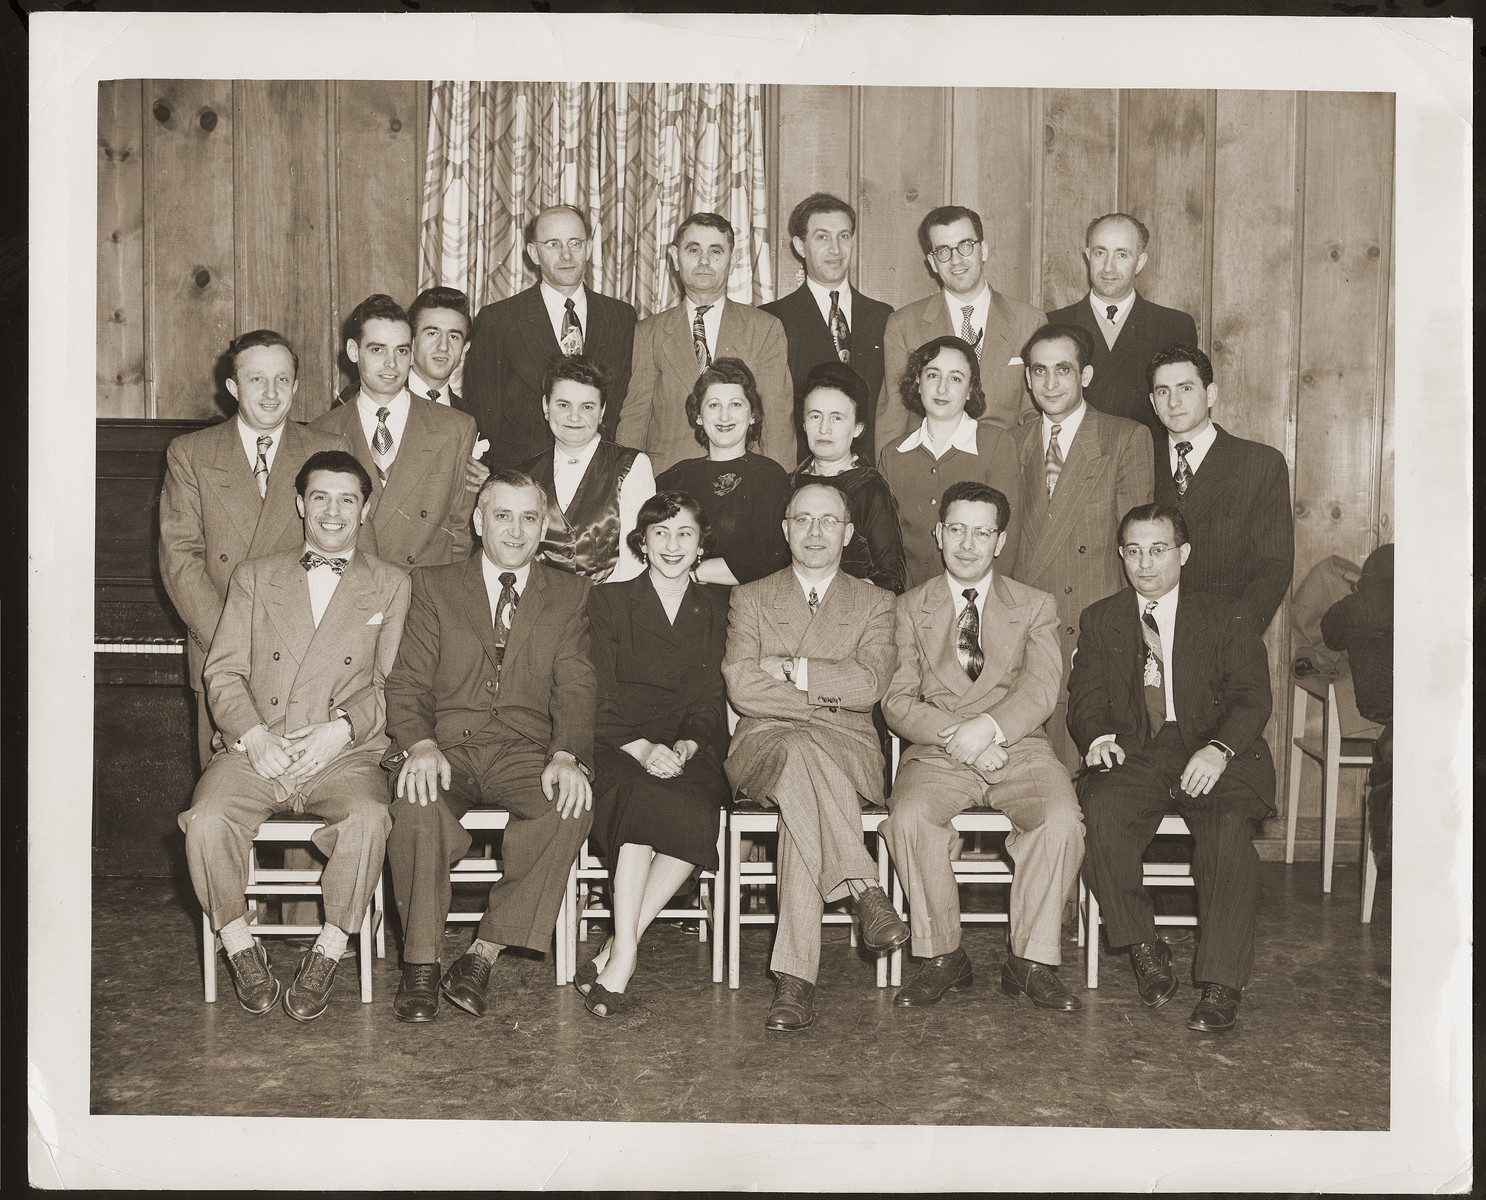 A group portrait of newly arrived Jewish immigrants and survivors.    Among those pictured is Josef Rozen, the donor's brother, in the second row, first from right, and Mr. Kaufman, an HIAS representative, seated in the first row, third from right.